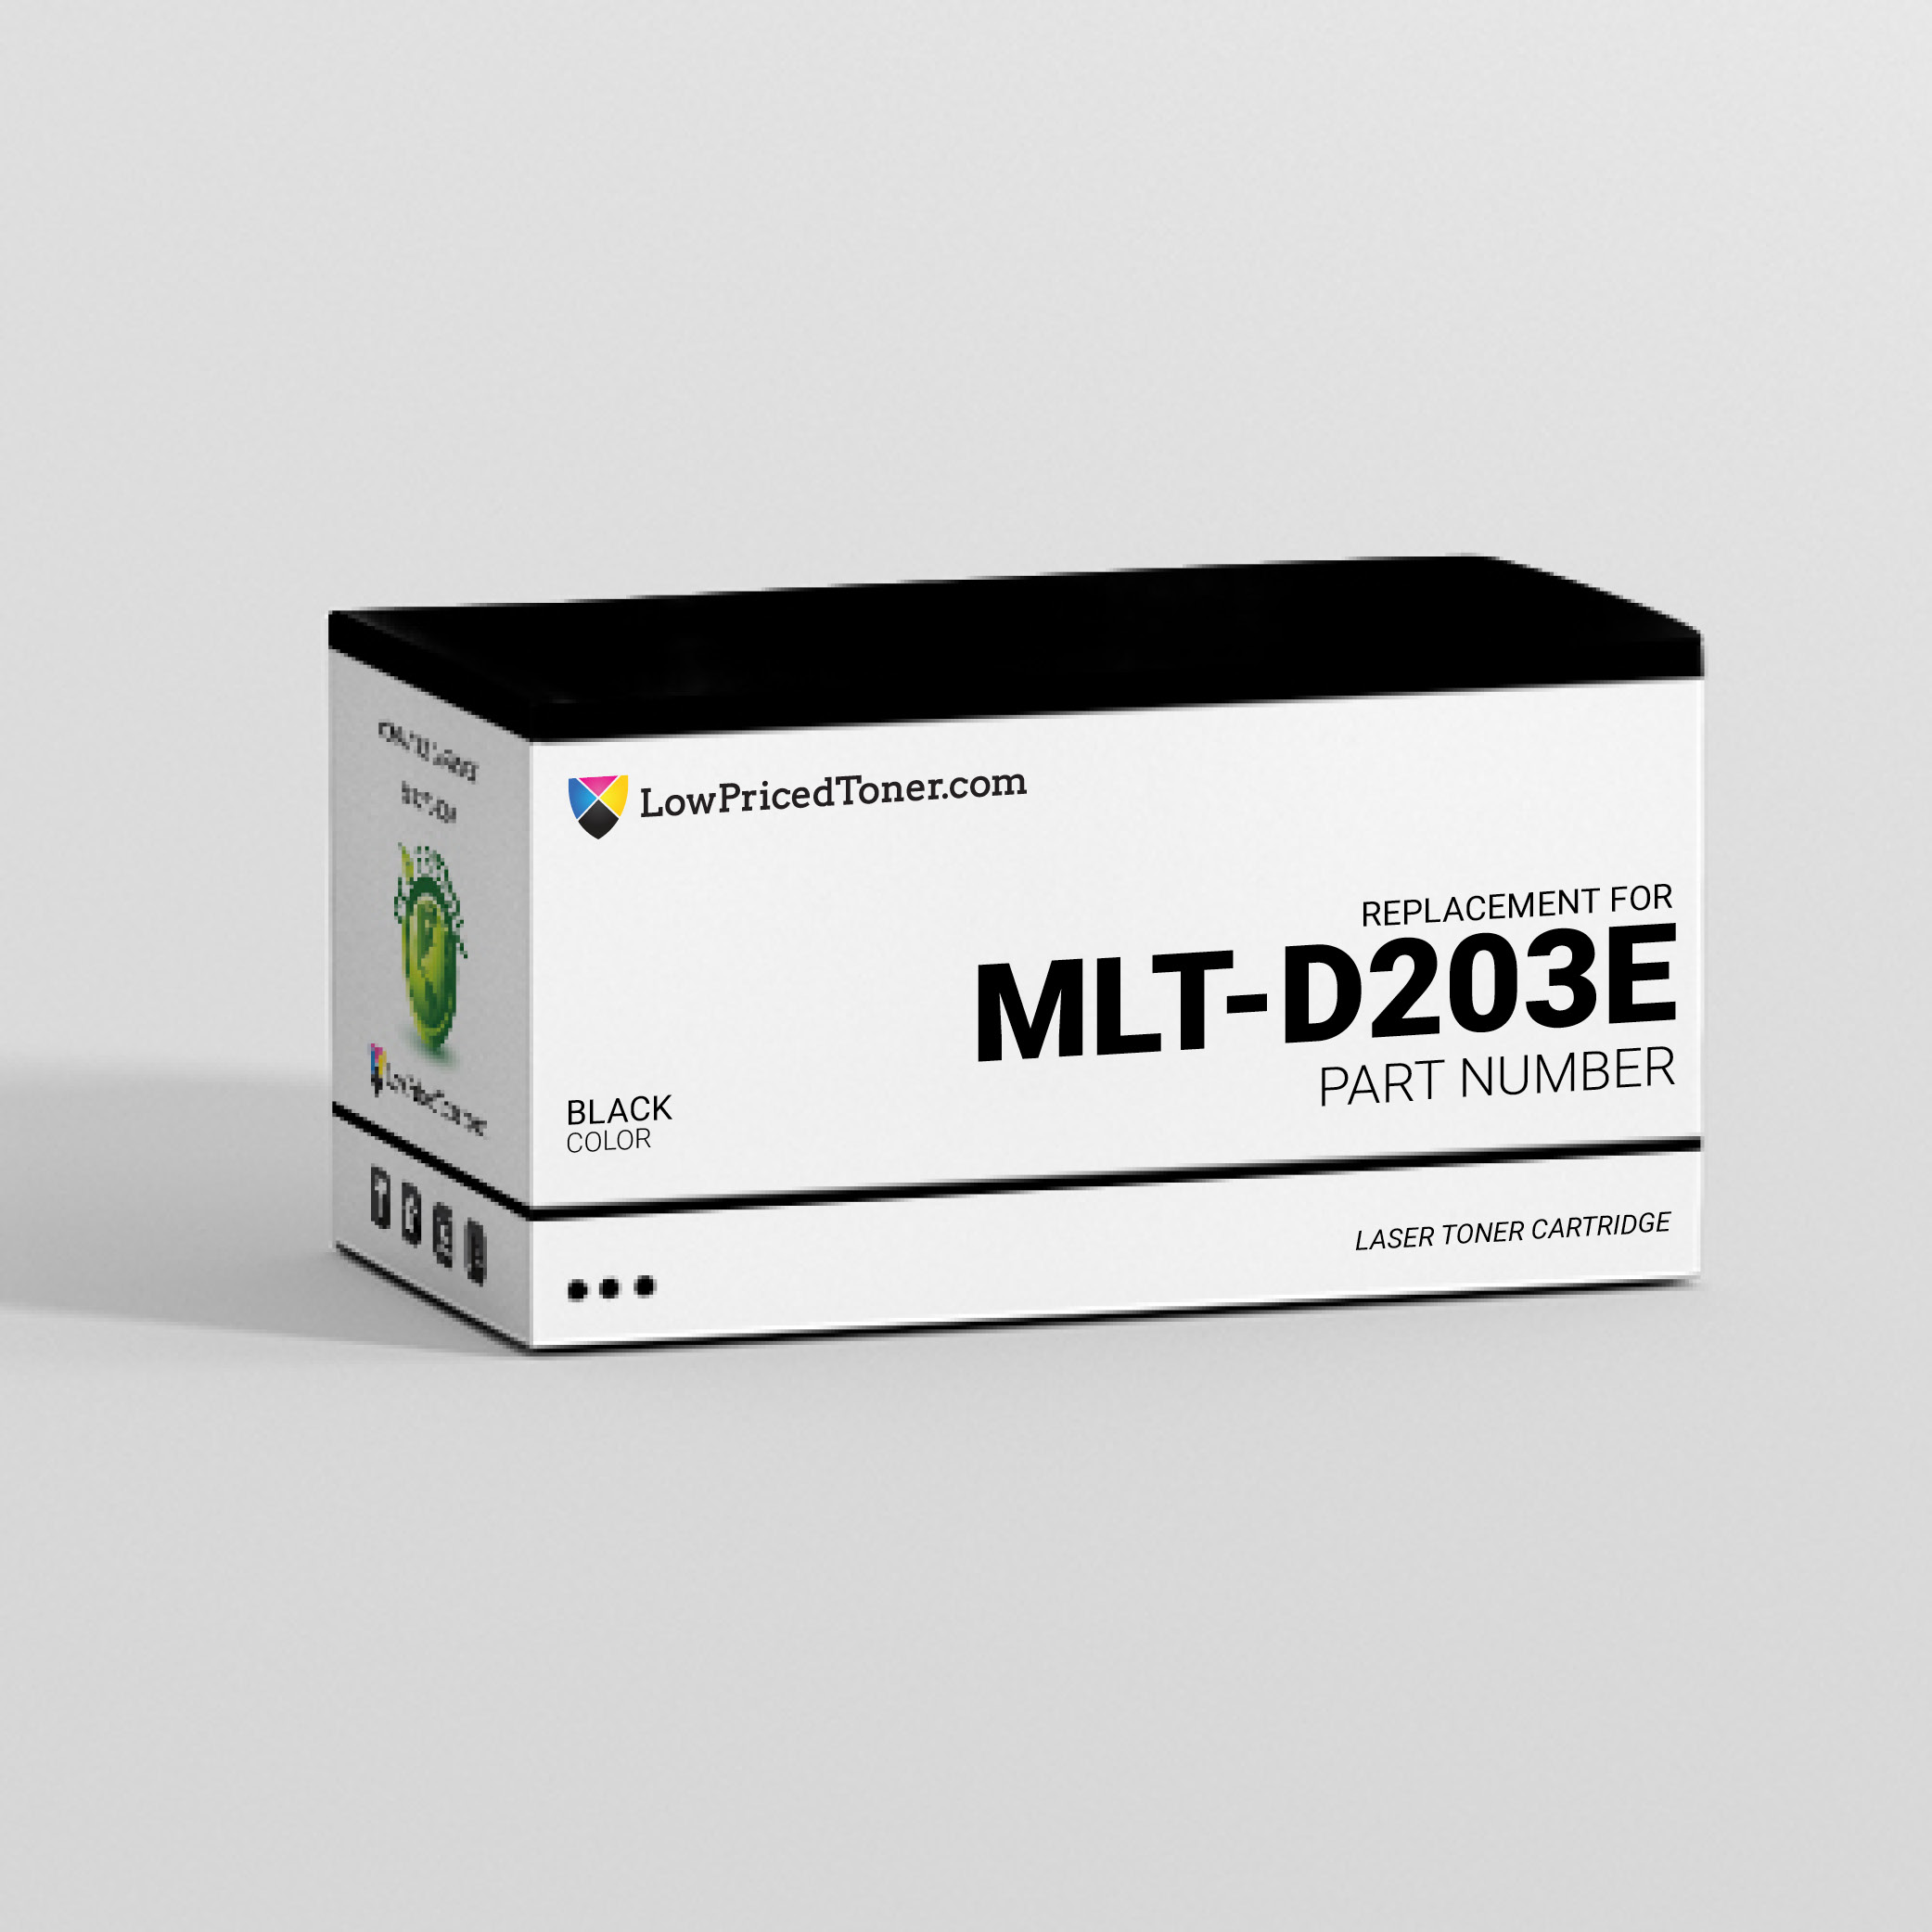 Samsung MLT-D203E Compatible Black Laser Toner Cartridge